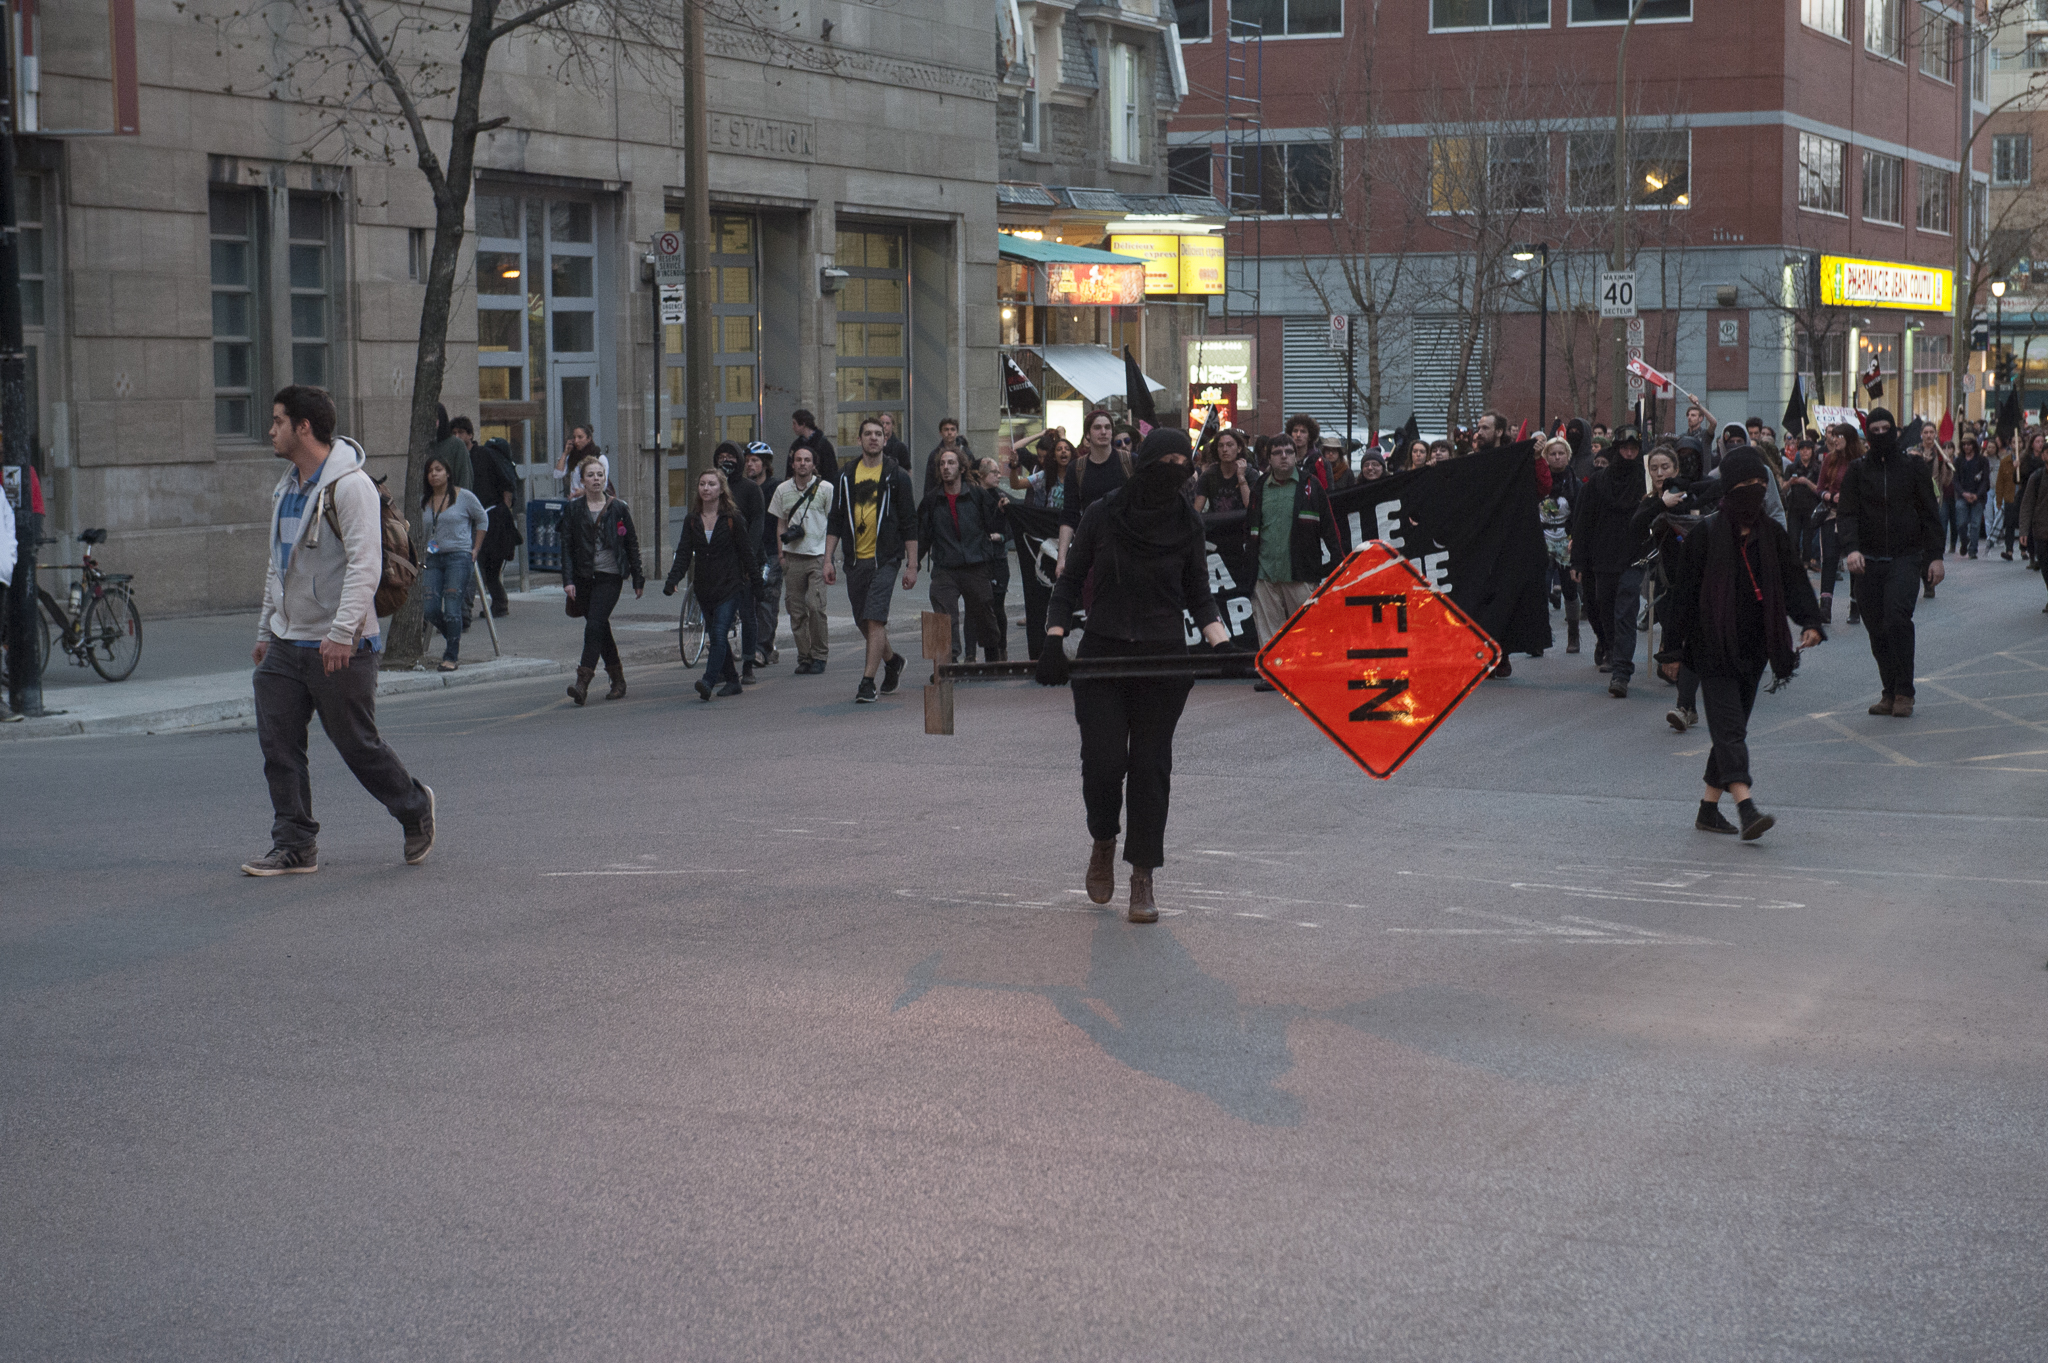 Masked protesters use road signs to block traffic on Maisonneuve St. - A.i.